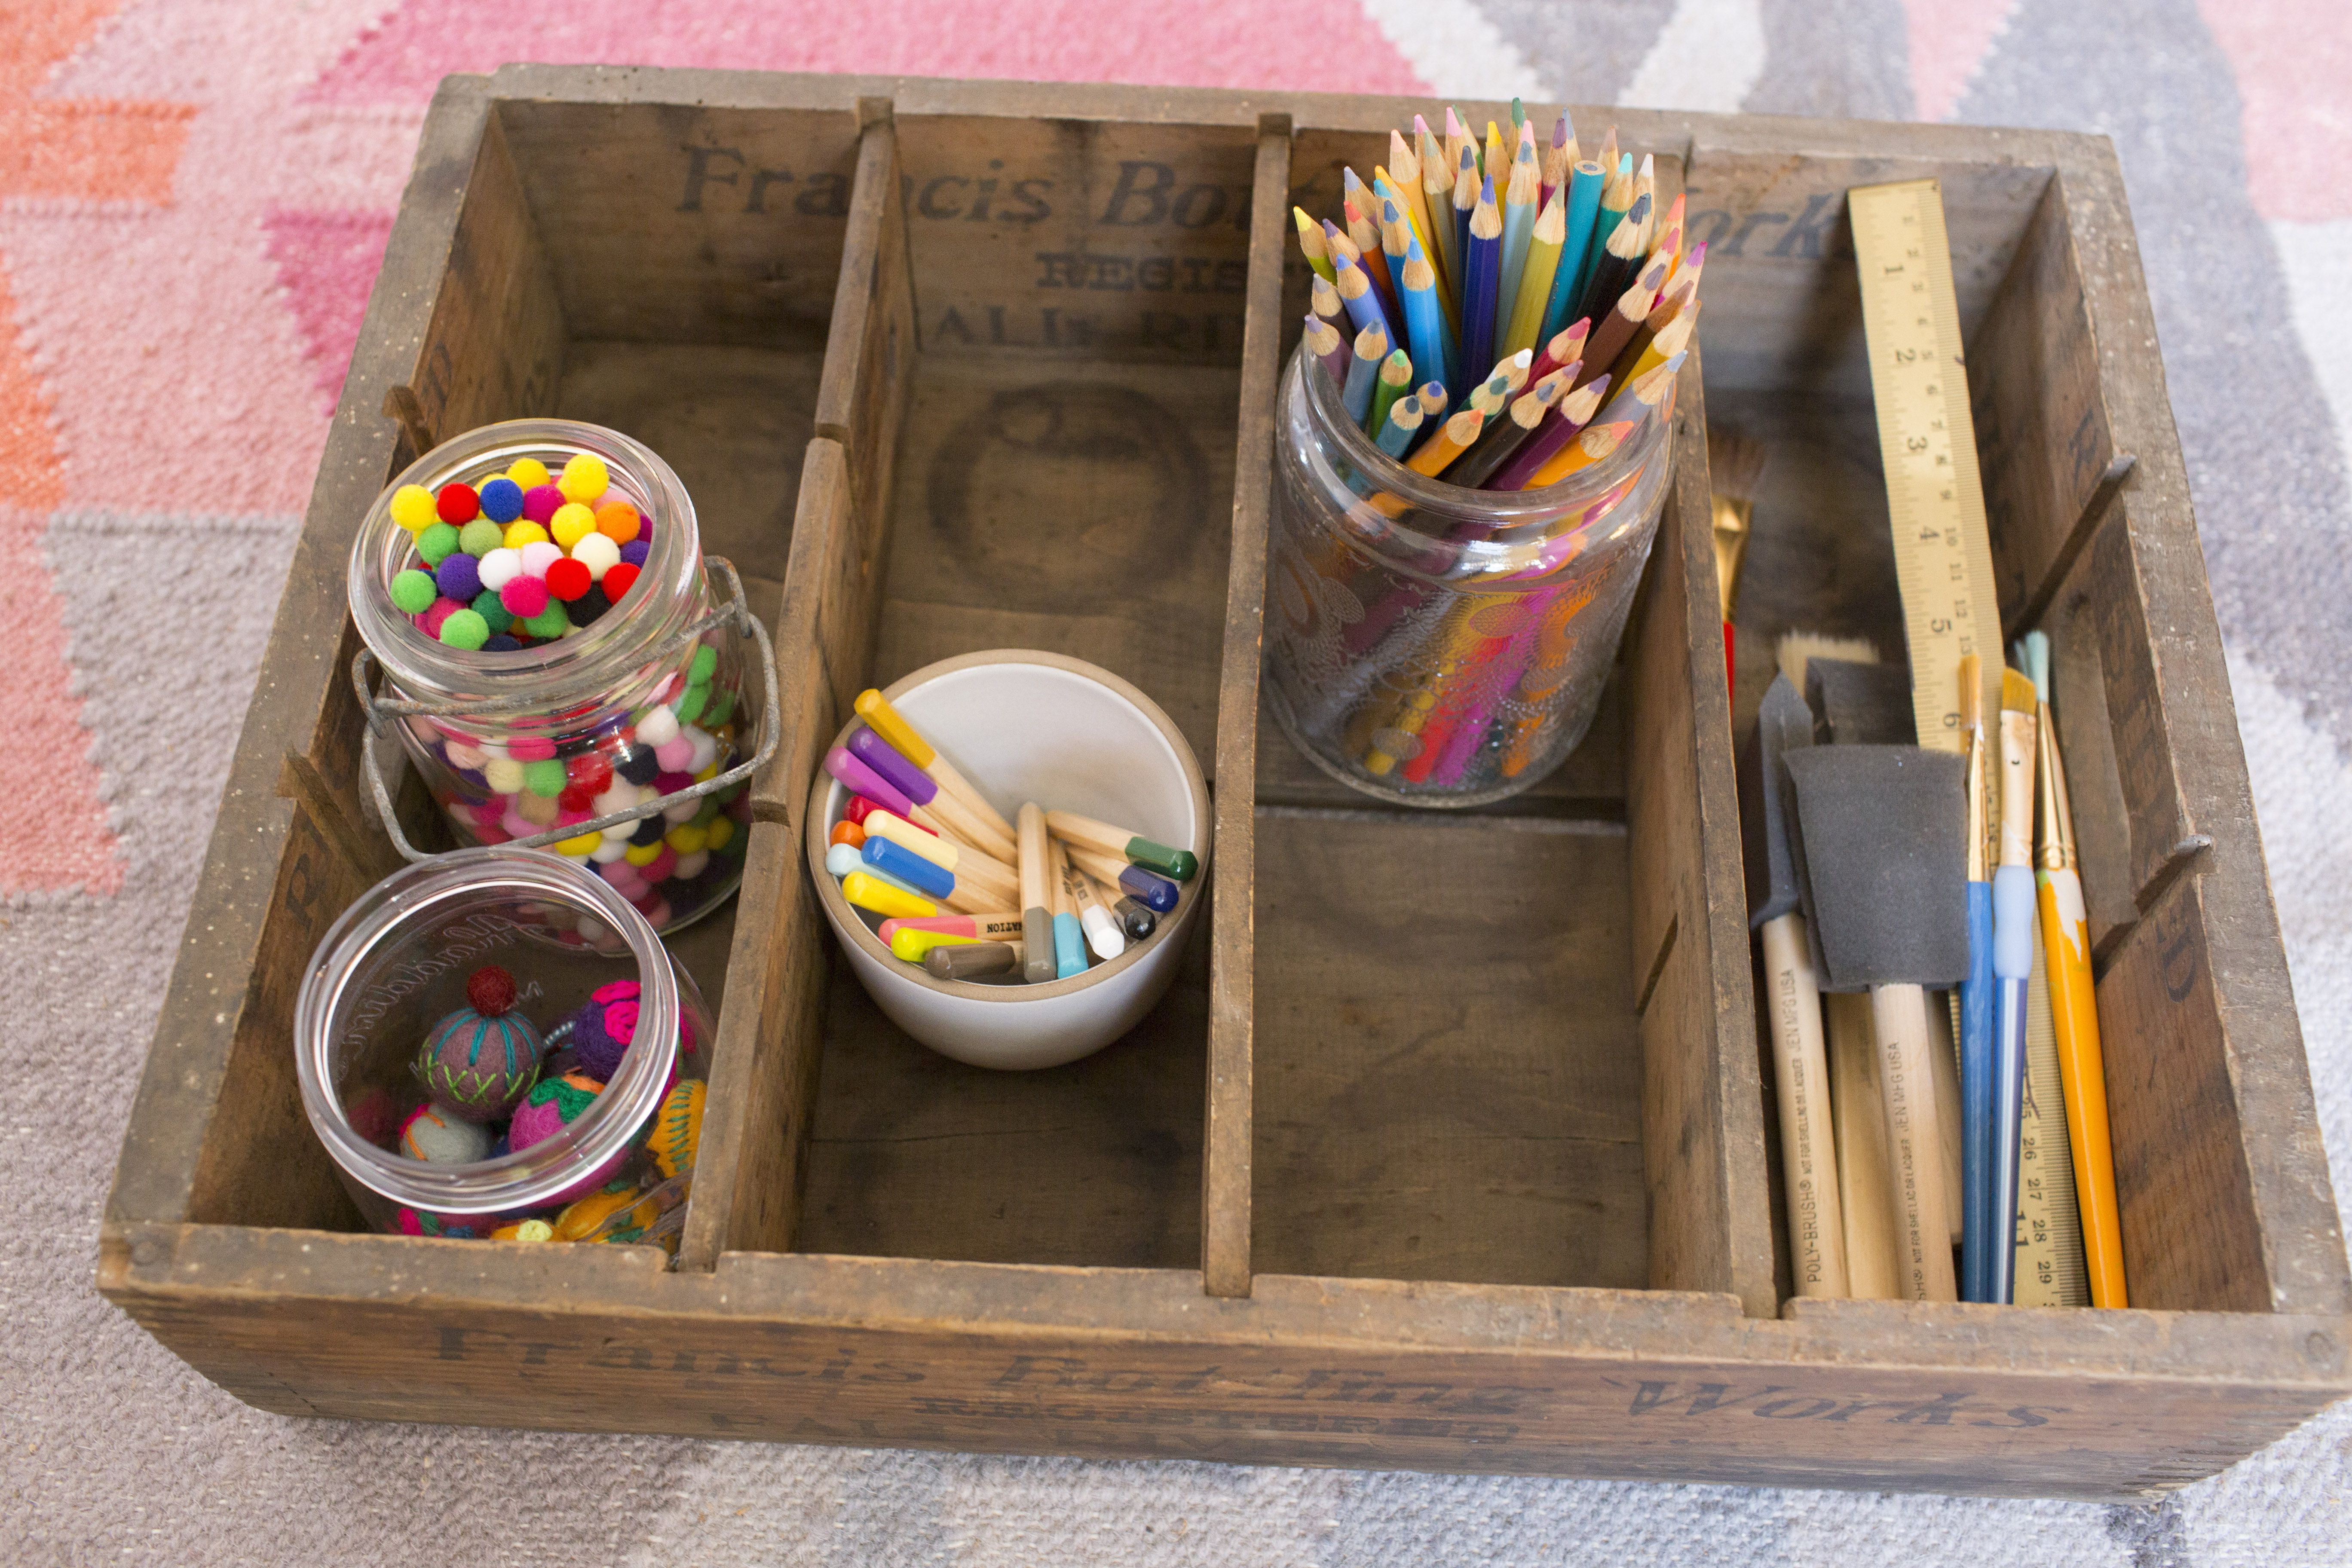 art supplies in a wooden crate